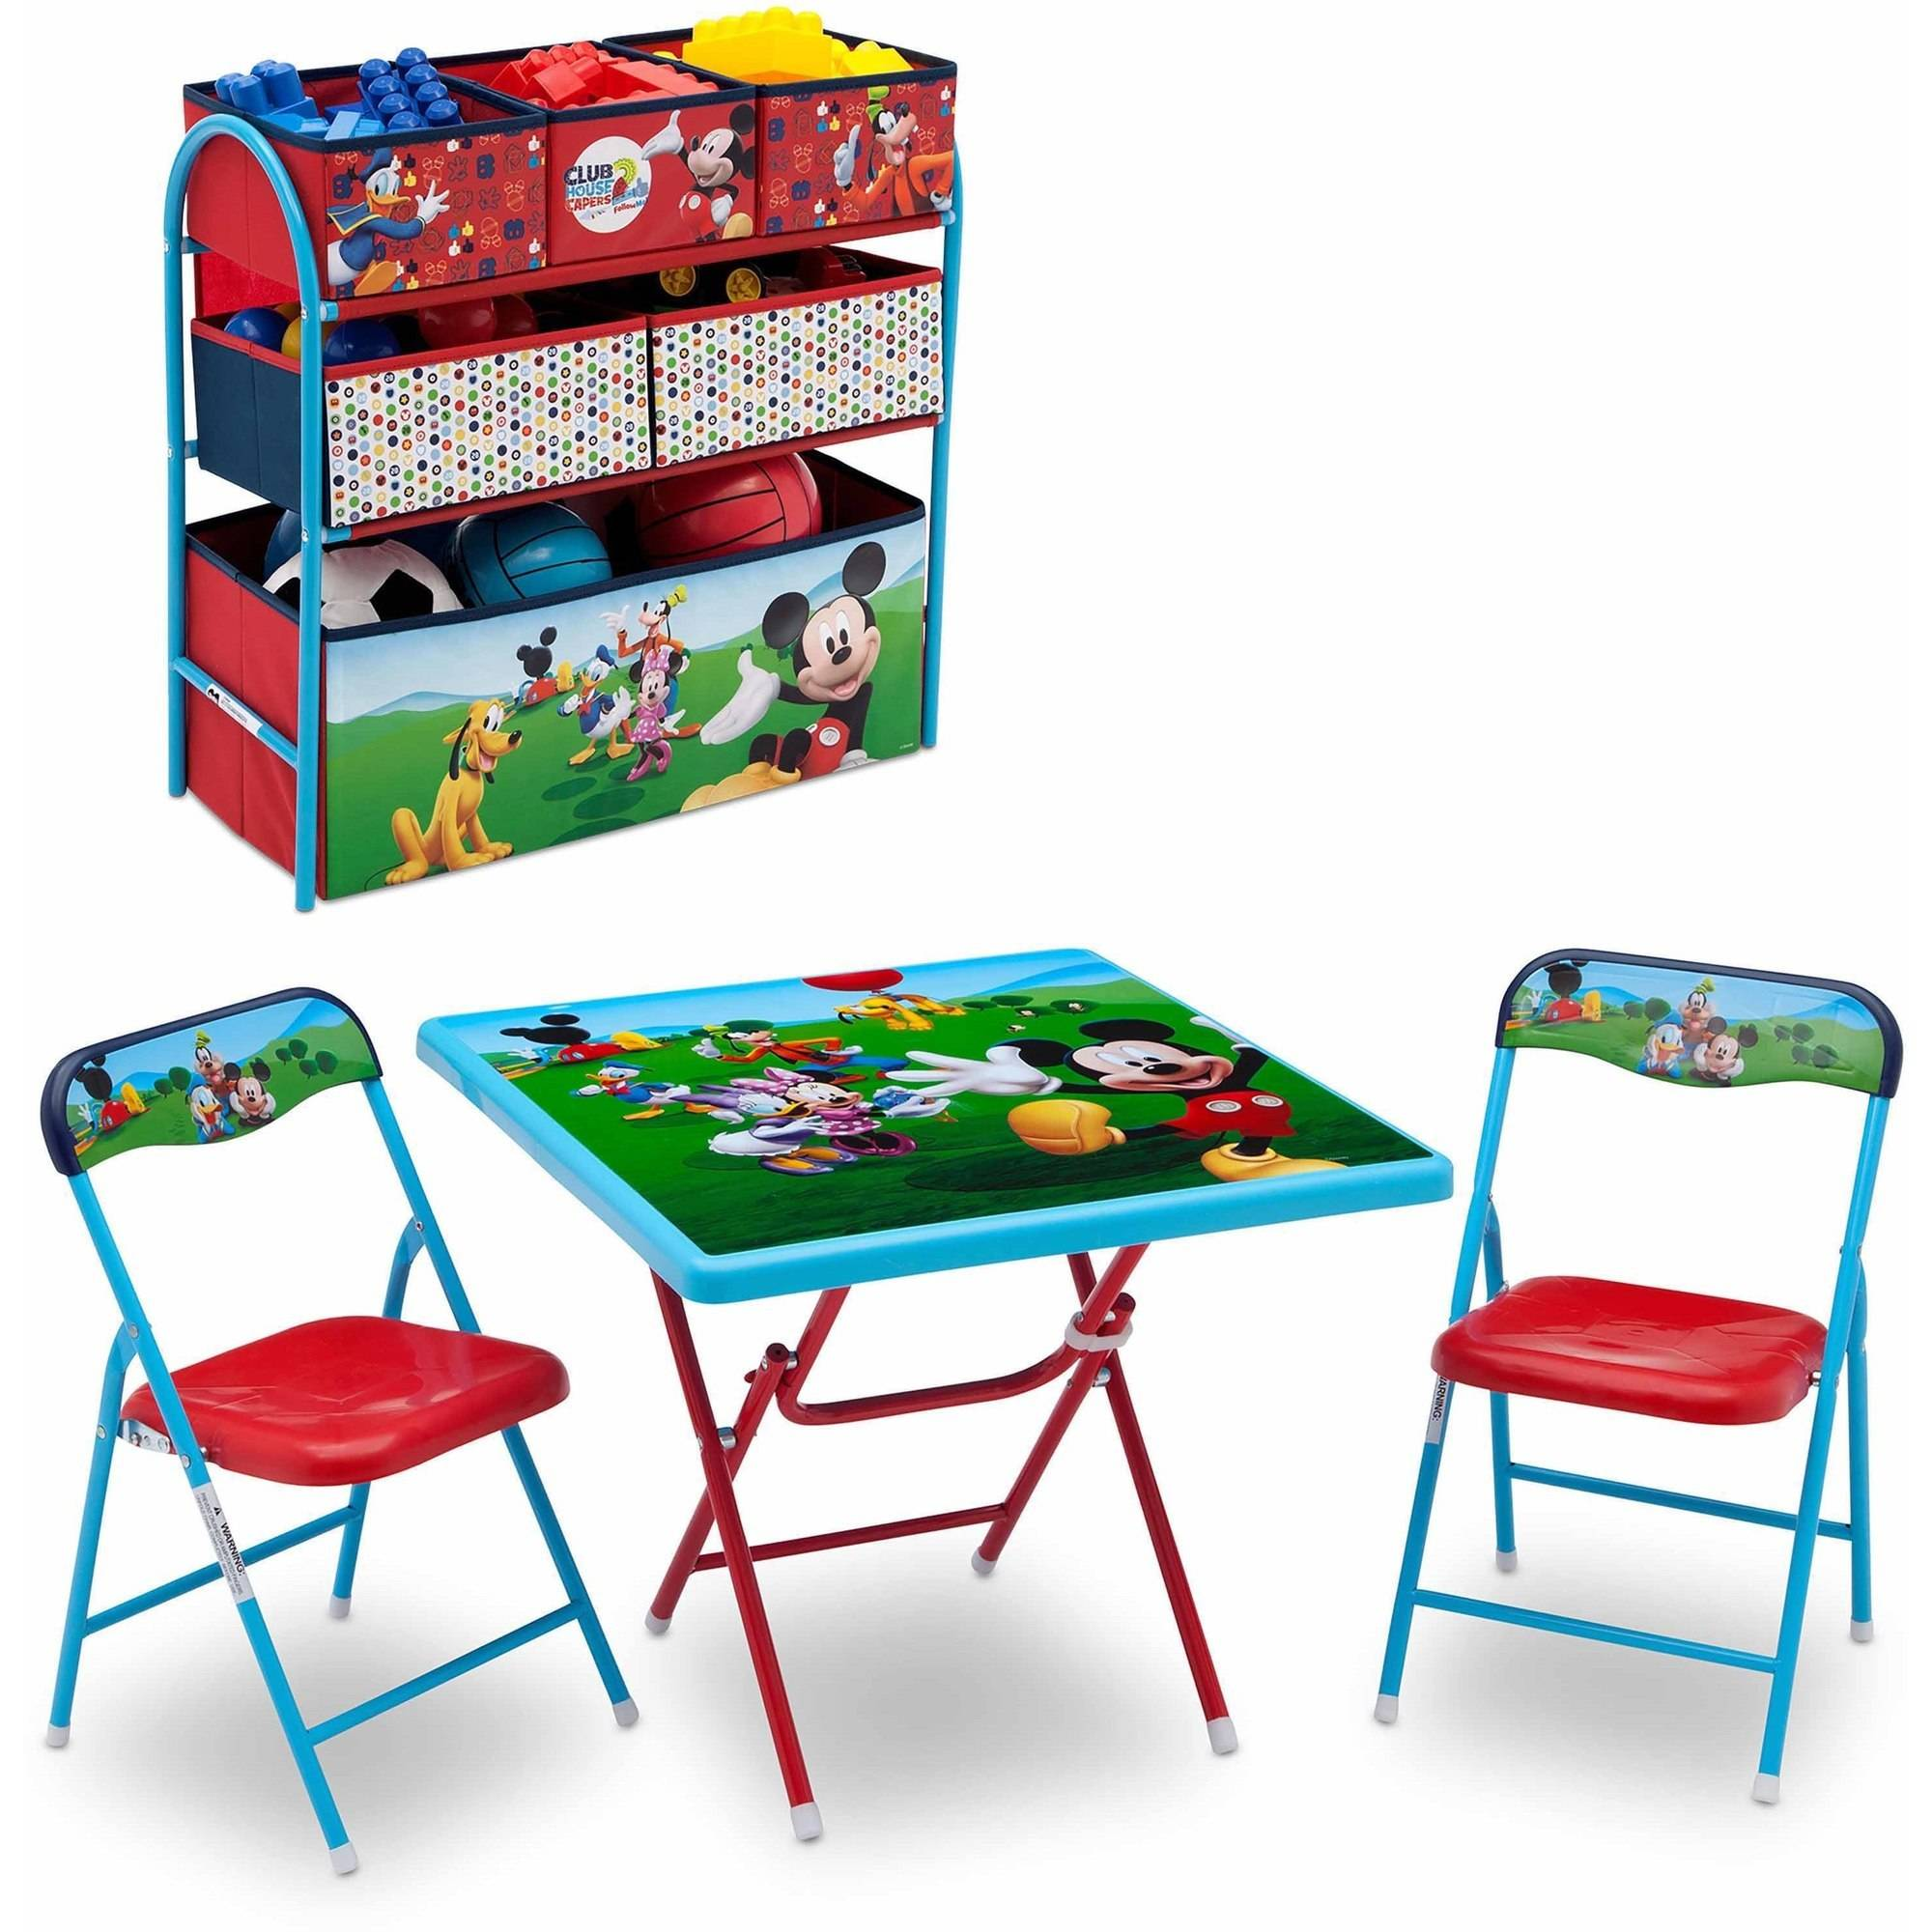 Disney Mickey Mouse, Toddler Children Playroom Solution By Delta Children